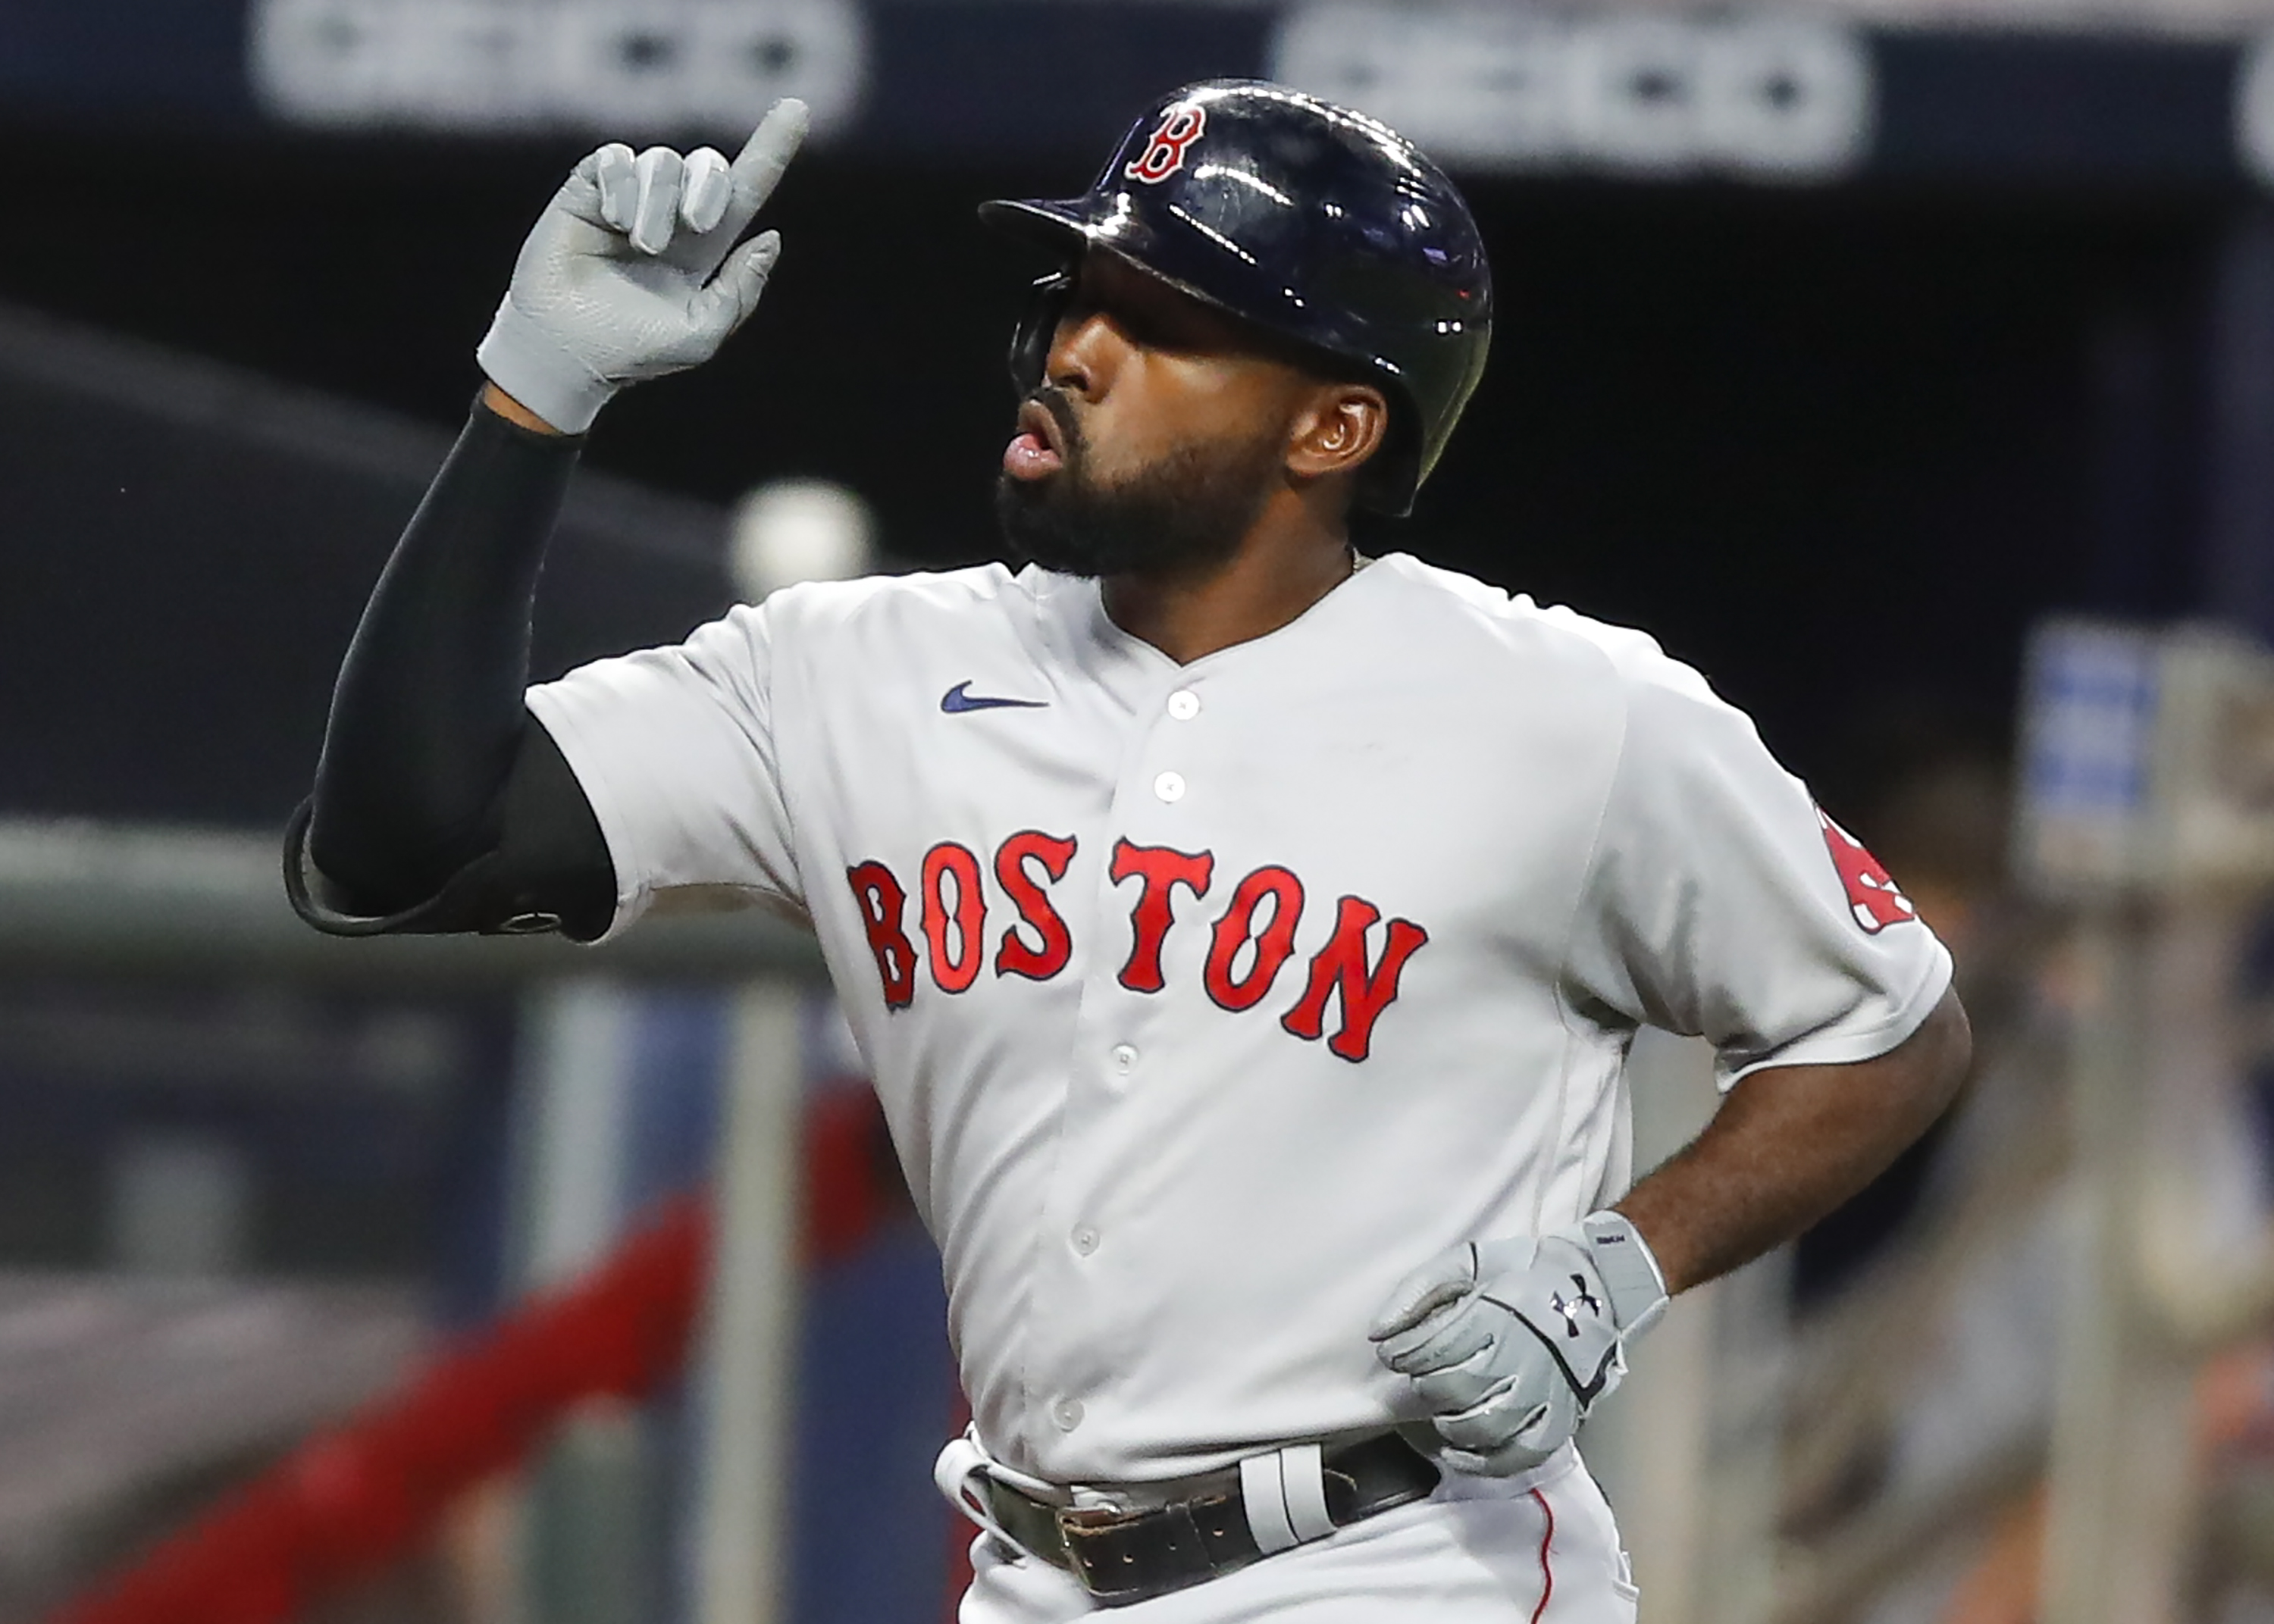 Jackie Bradley Jr. #19 of the Boston Red Sox reacts after hitting a solo home run in the fifth inning of an MLB game against the Atlanta Braves at Truist Park on September 25, 2020 in Atlanta, Georgia.